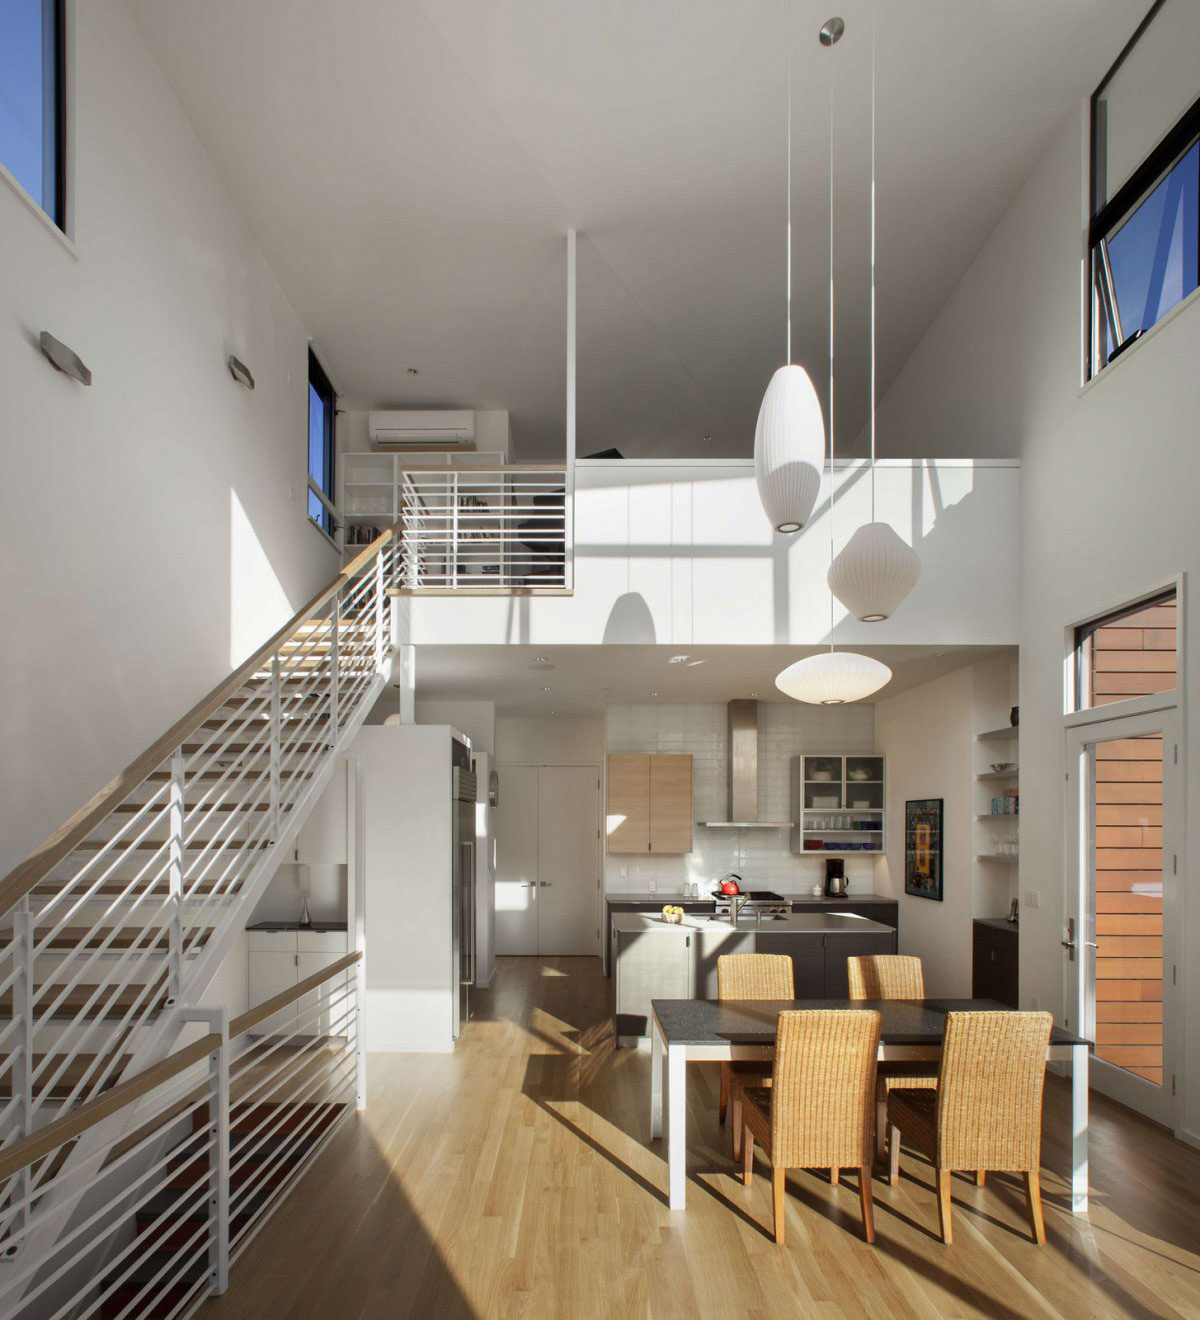 Lighting, Dining Table, Stairs, Kitchen, Stylish Townhomes near Boulder, Colorado